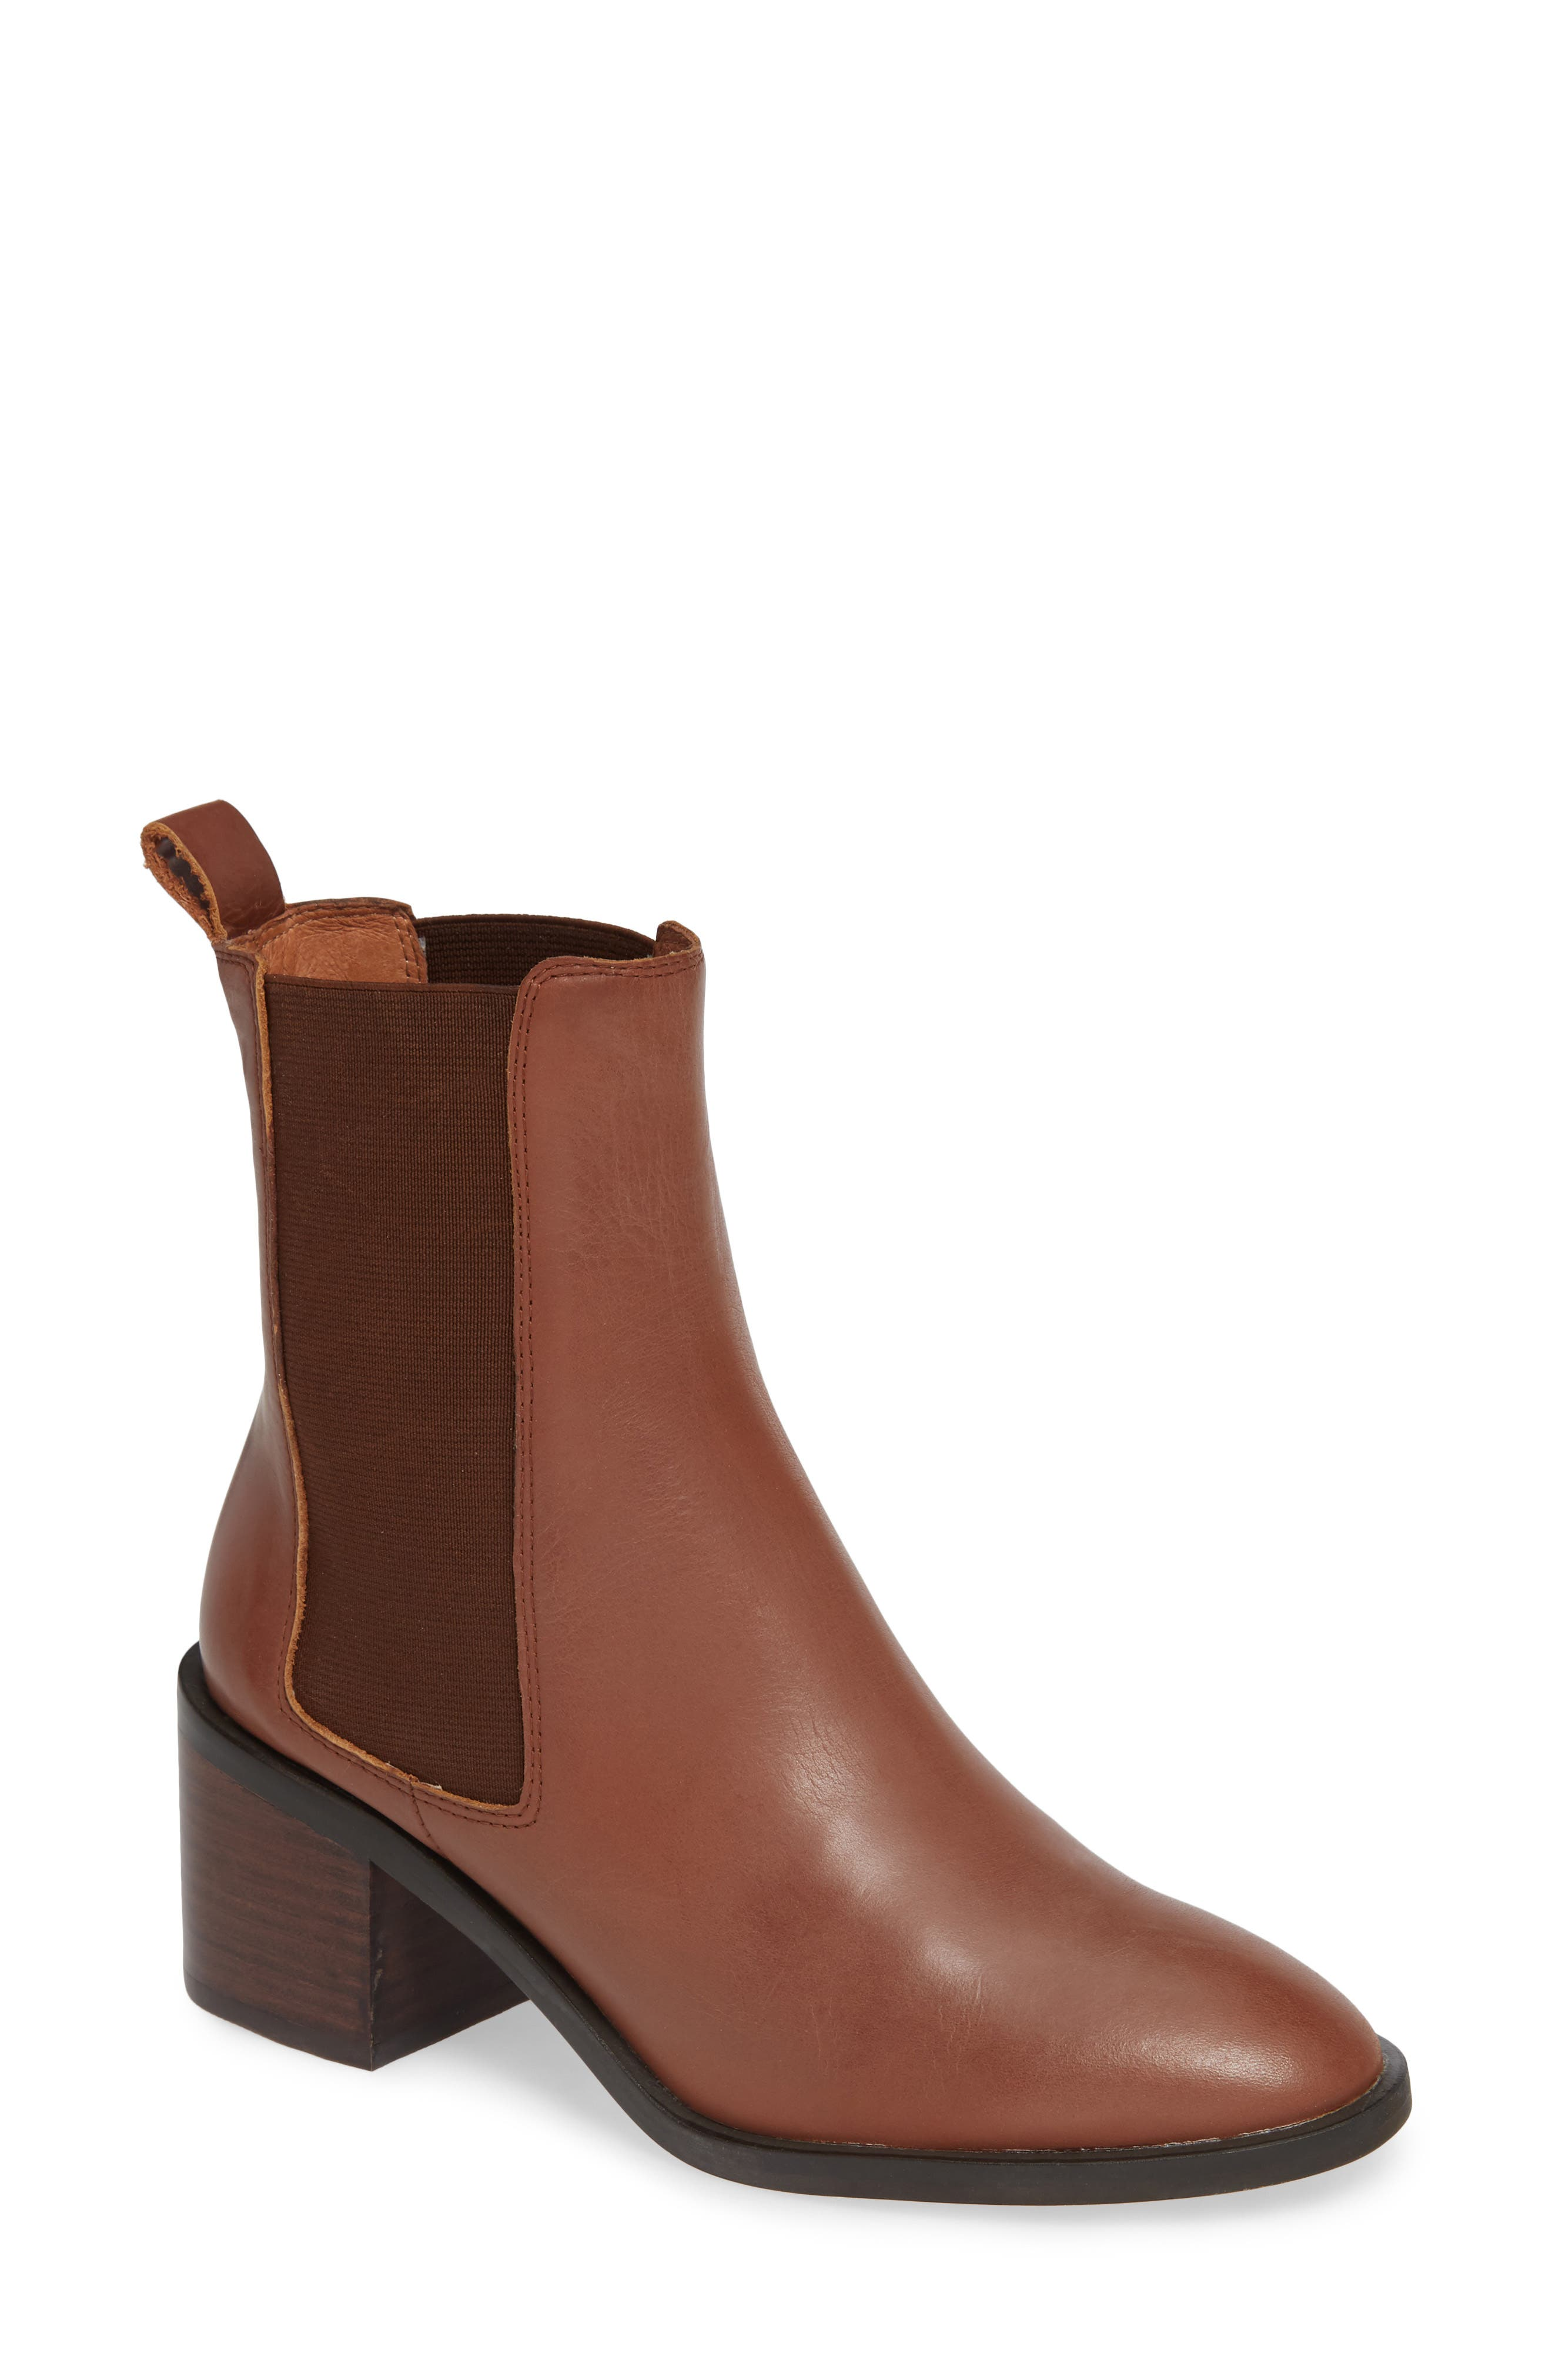 ALIAS MAE Gail Chelsea Bootie in Tan Leather